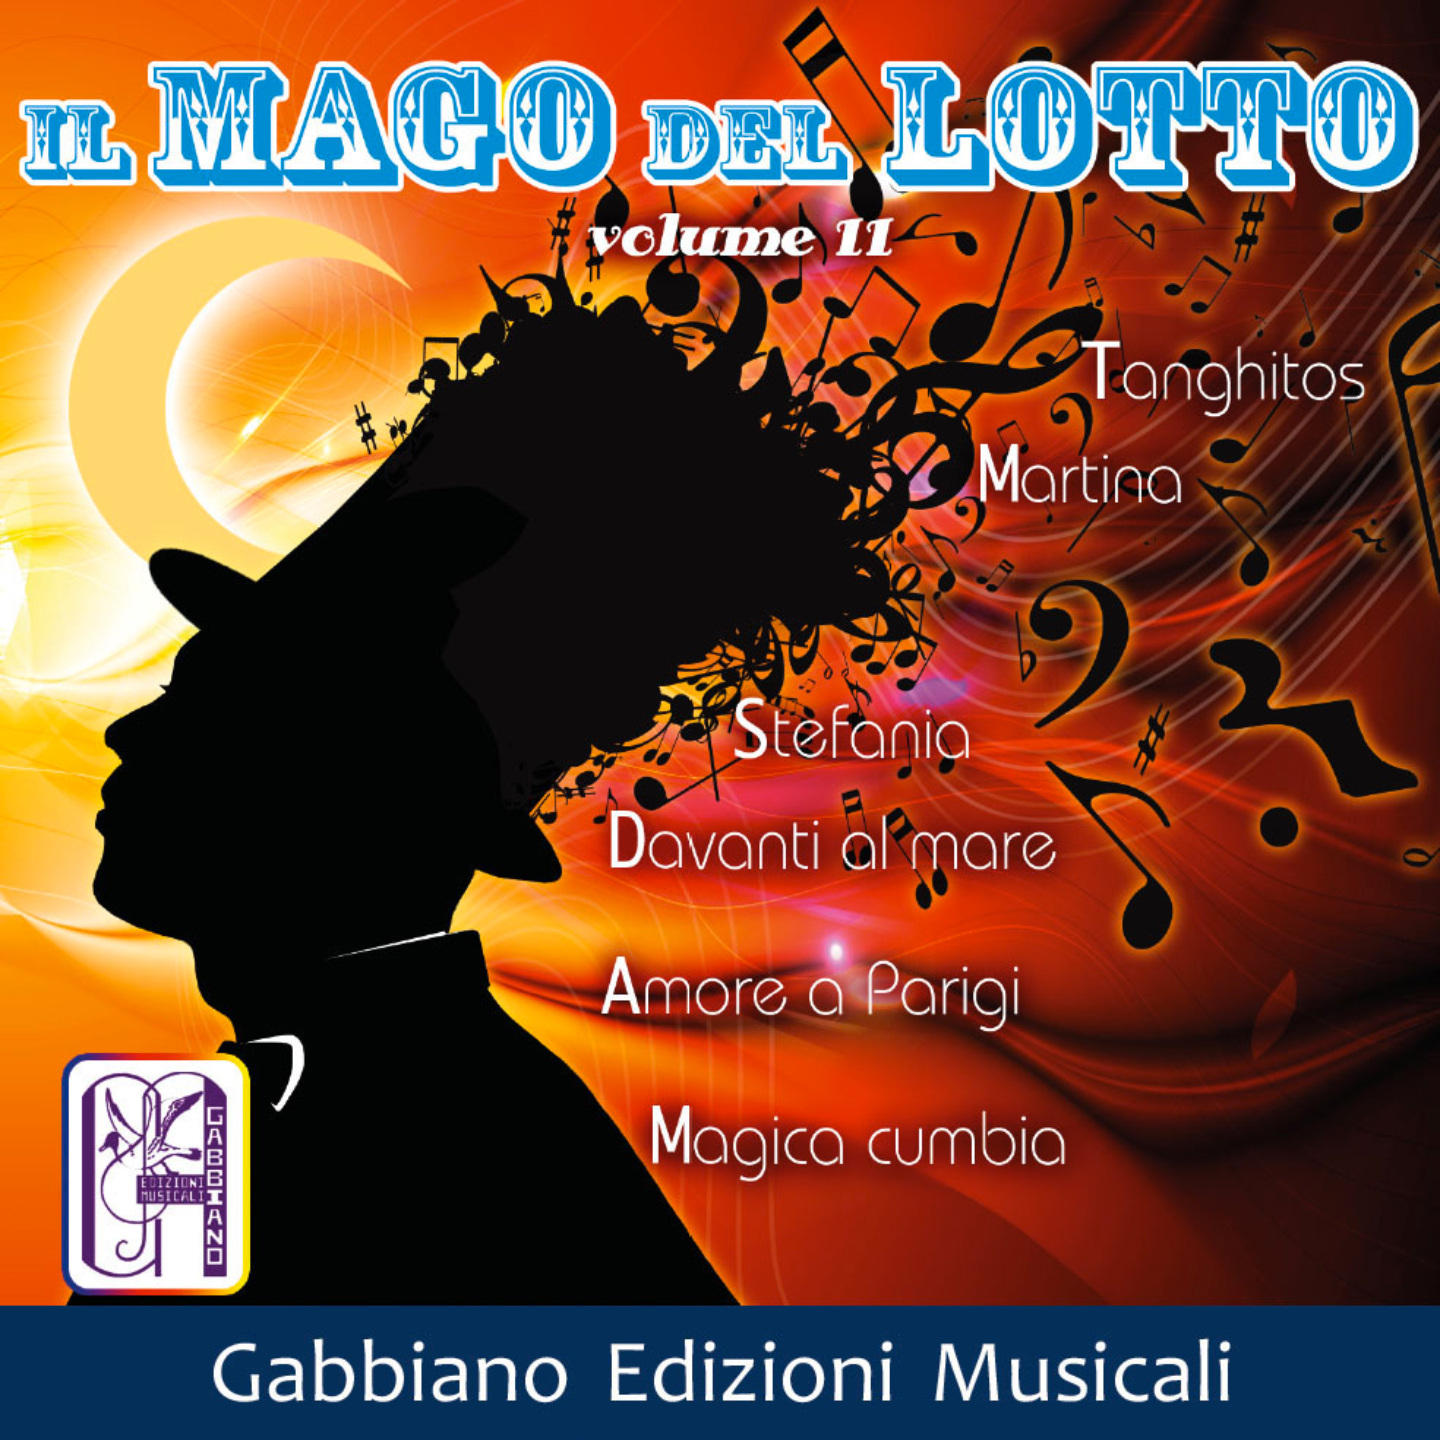 GBN011CD/CL - Il mago del lotto - Volume 11